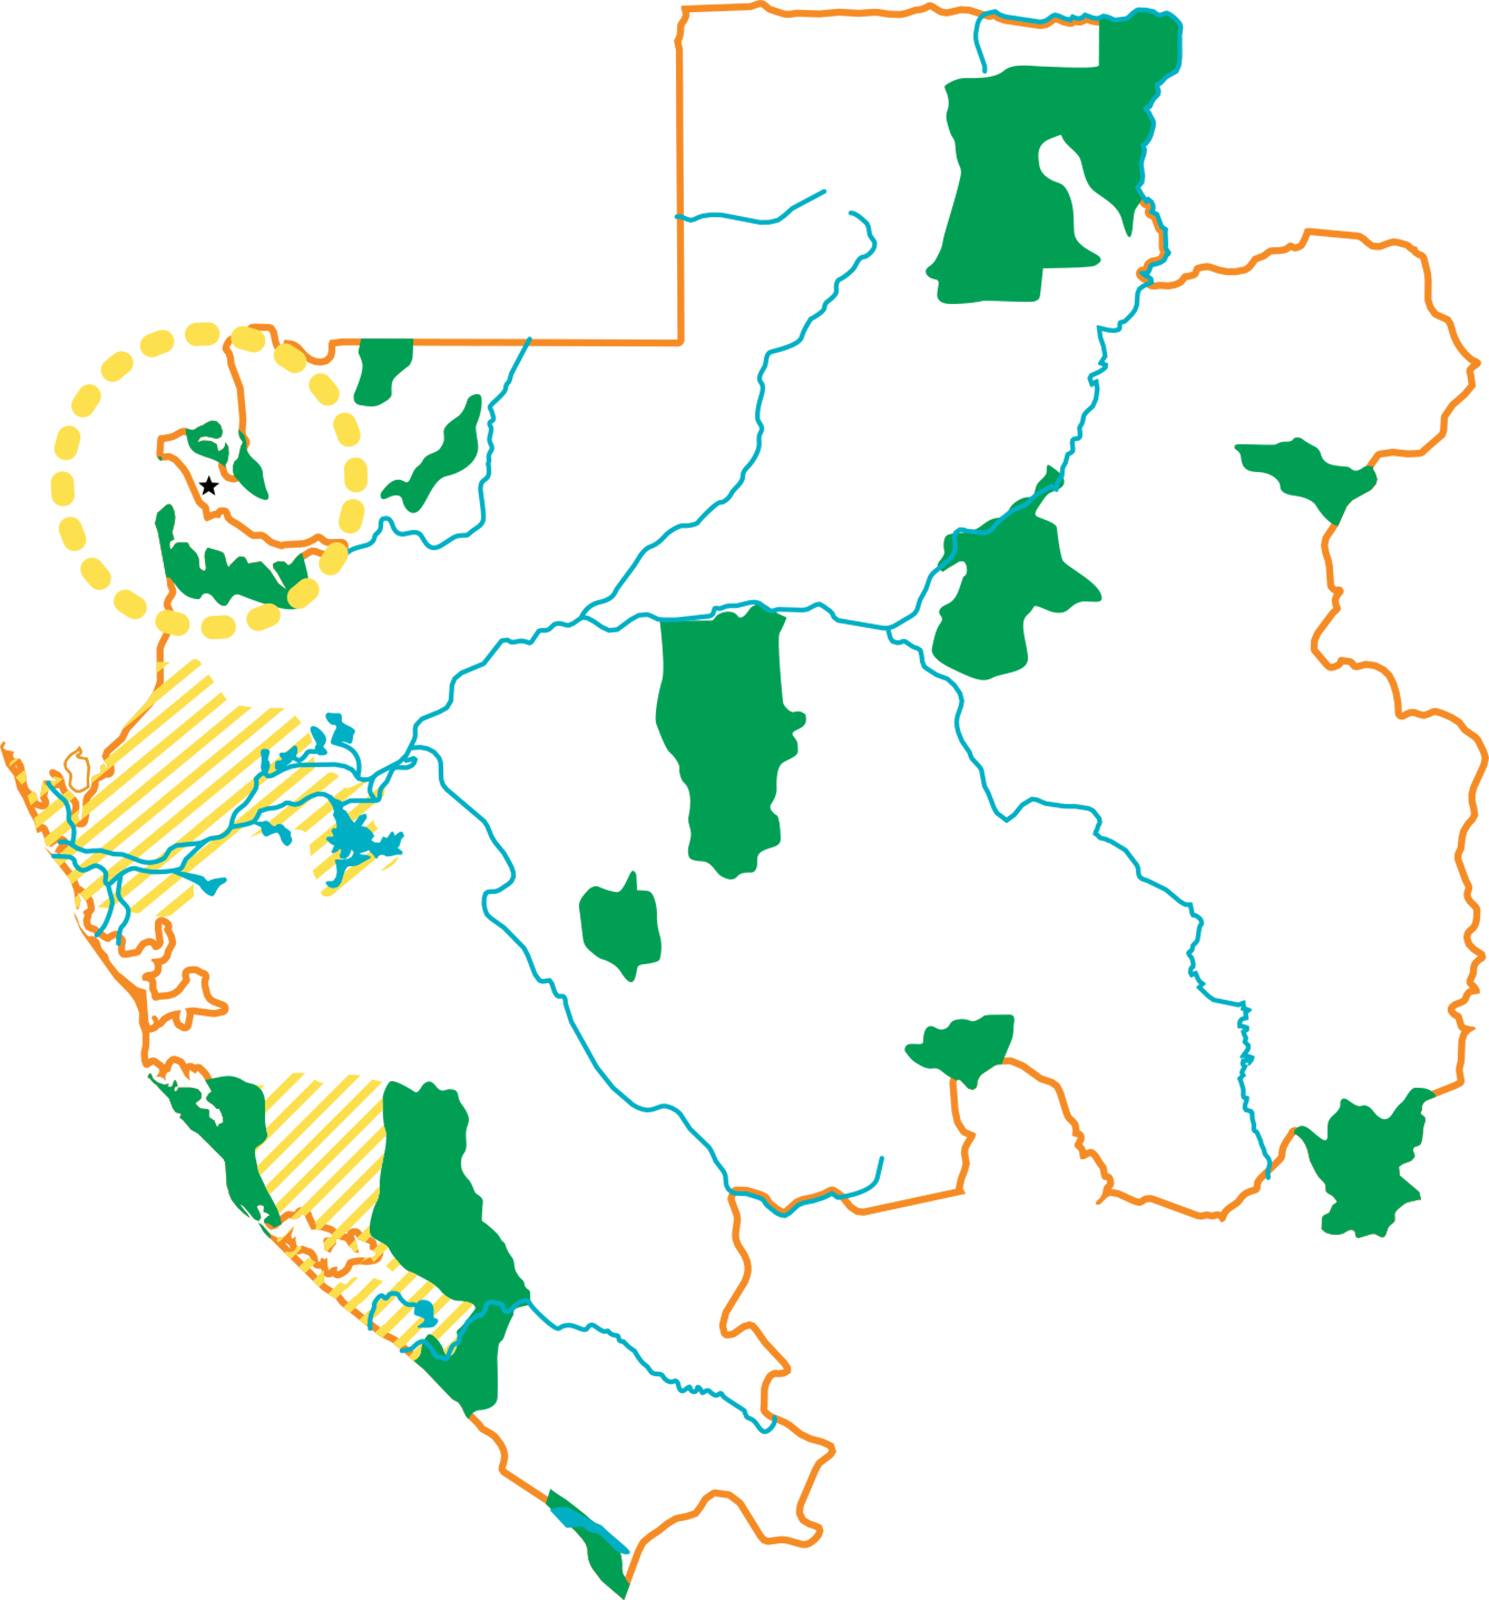 Map of Gabon illustrating the 13 national parks that cover 10% of the country